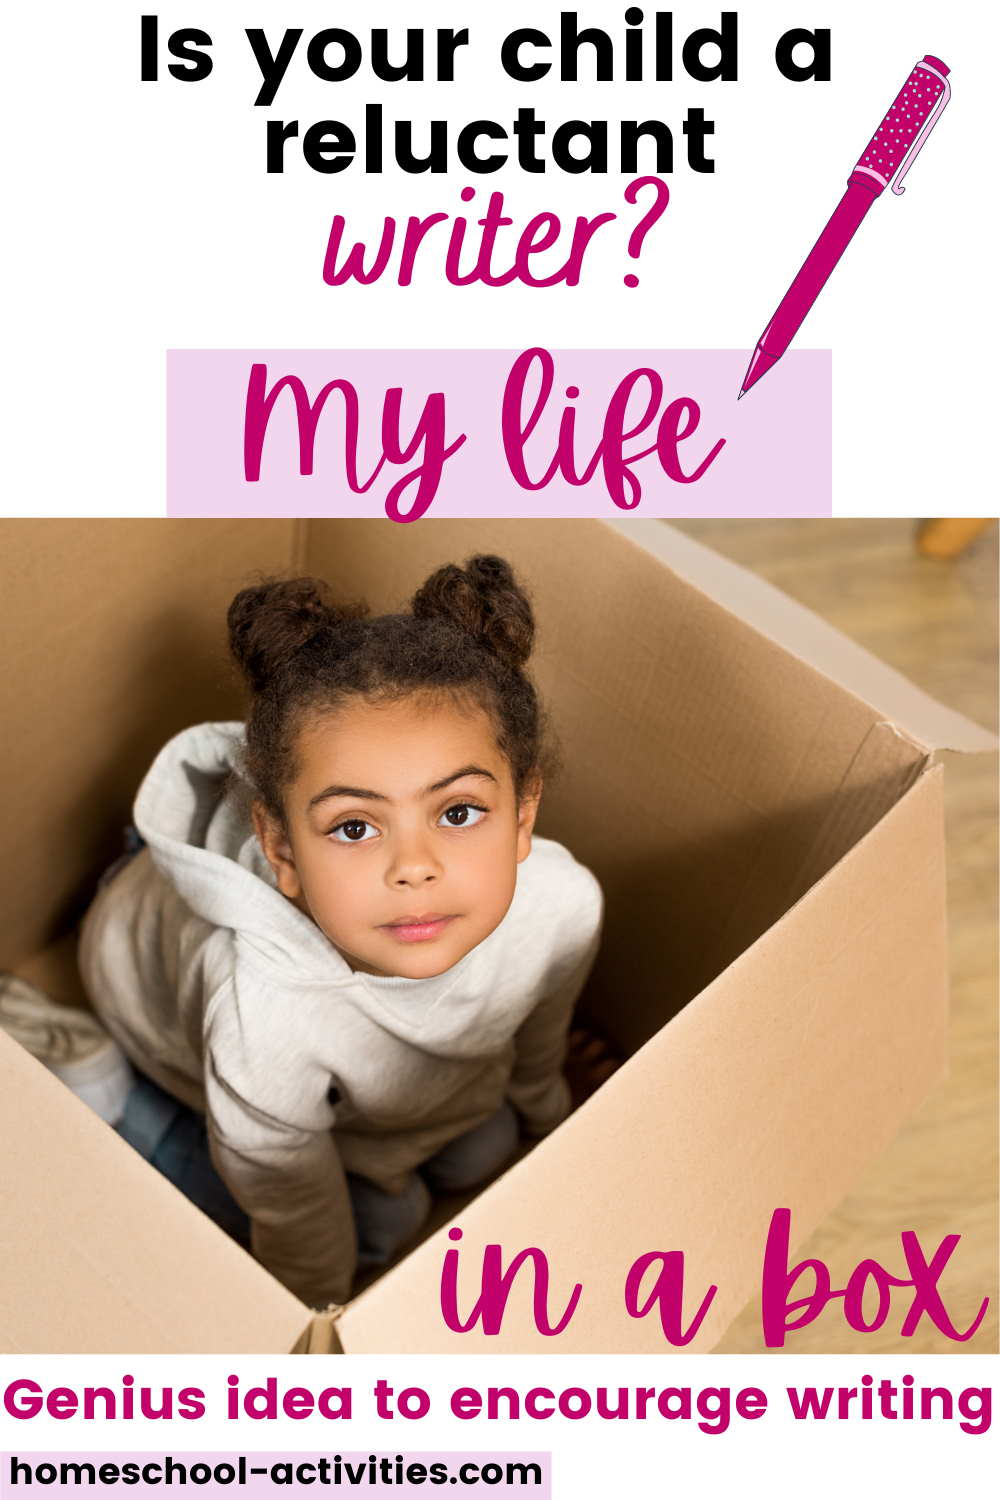 My life in a box - great kids writing activity